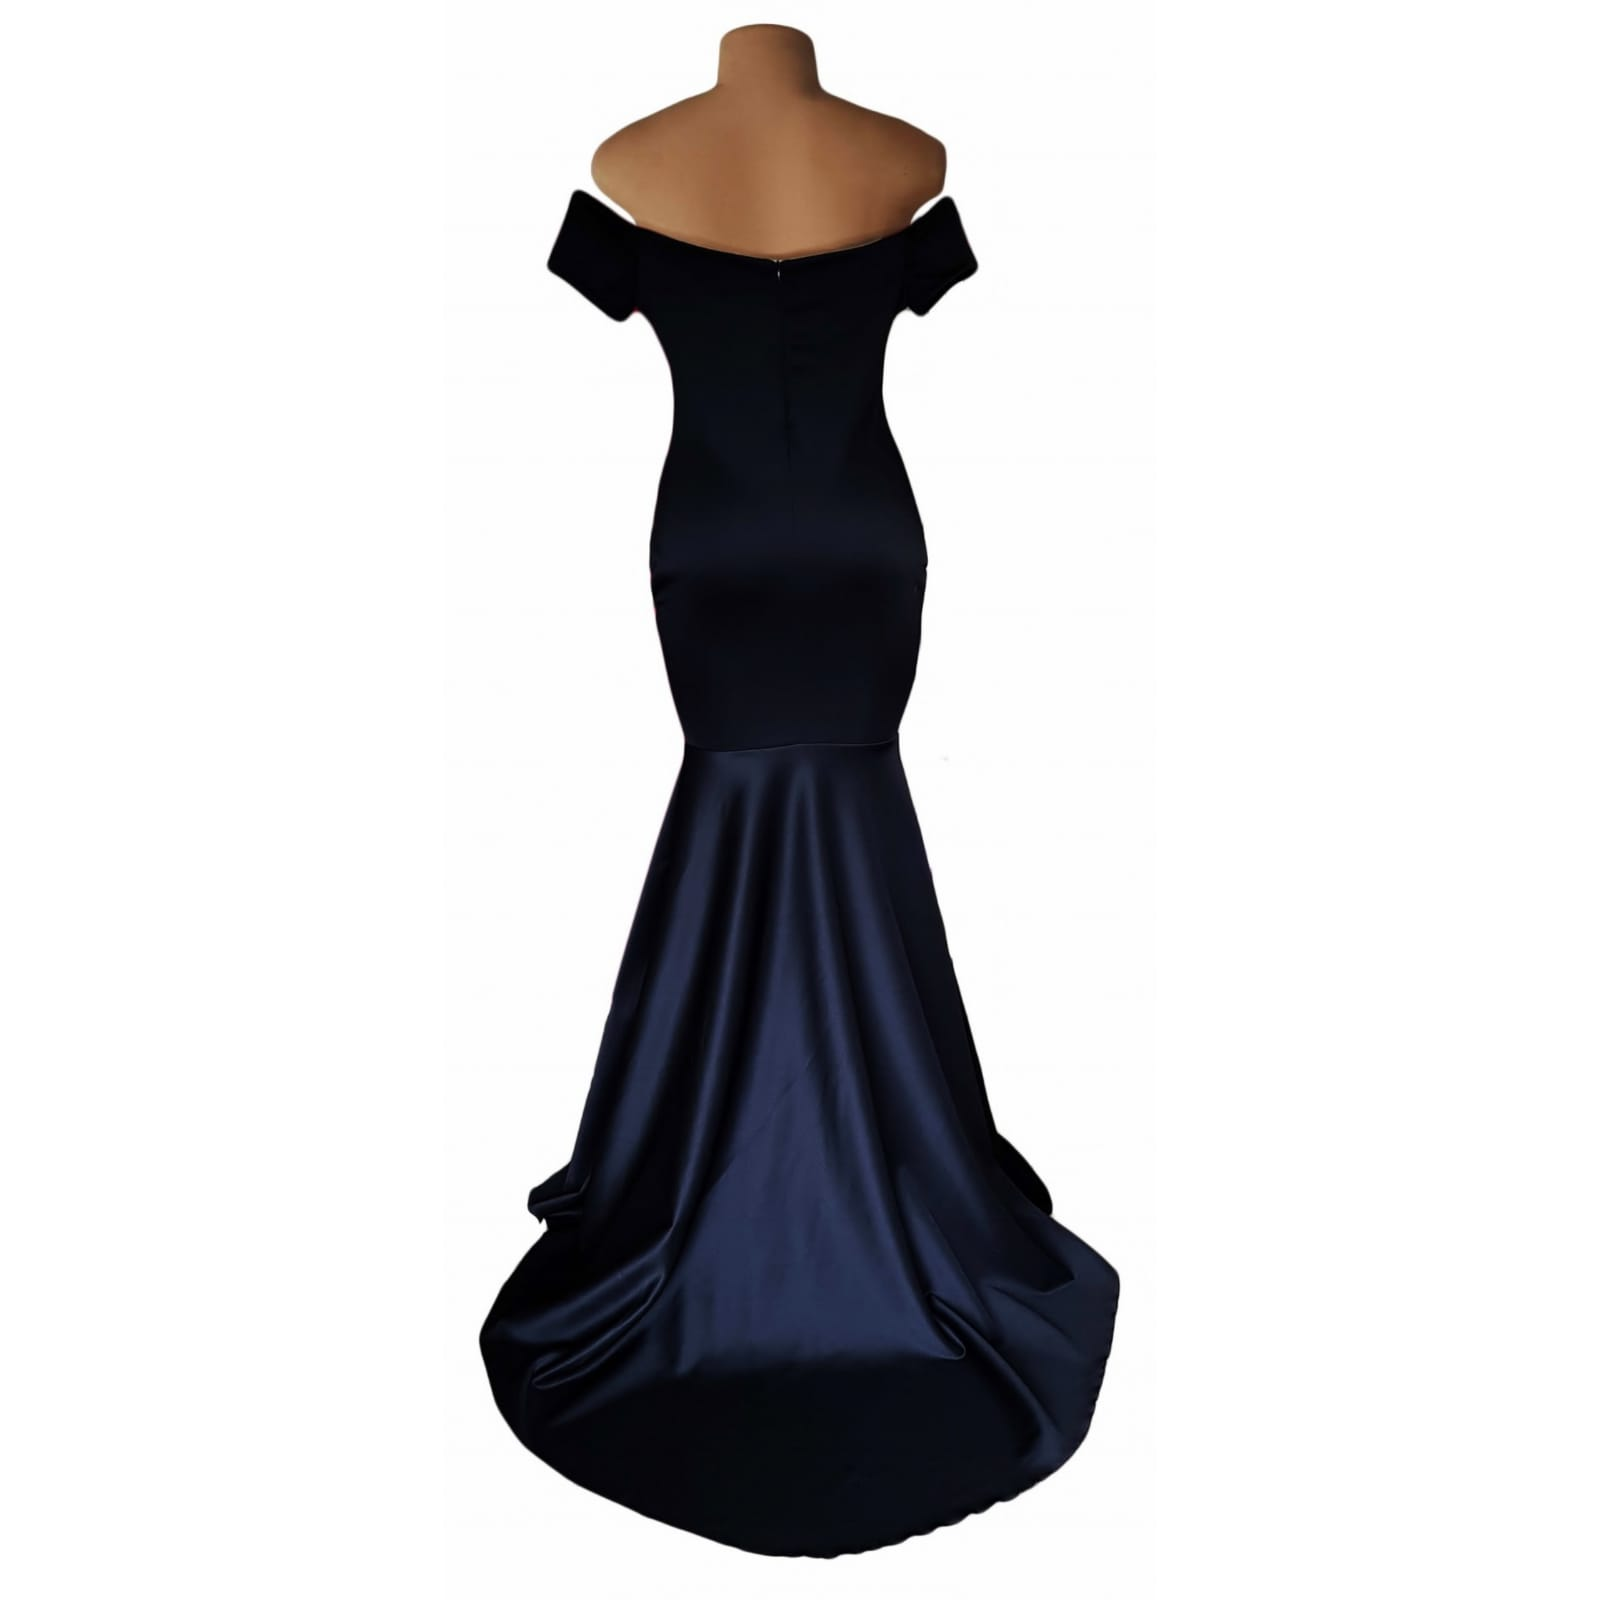 Off shoulder black soft mermaid prom dress 5 off shoulder black soft mermaid prom dress with a train and off shoulder cap sleeves